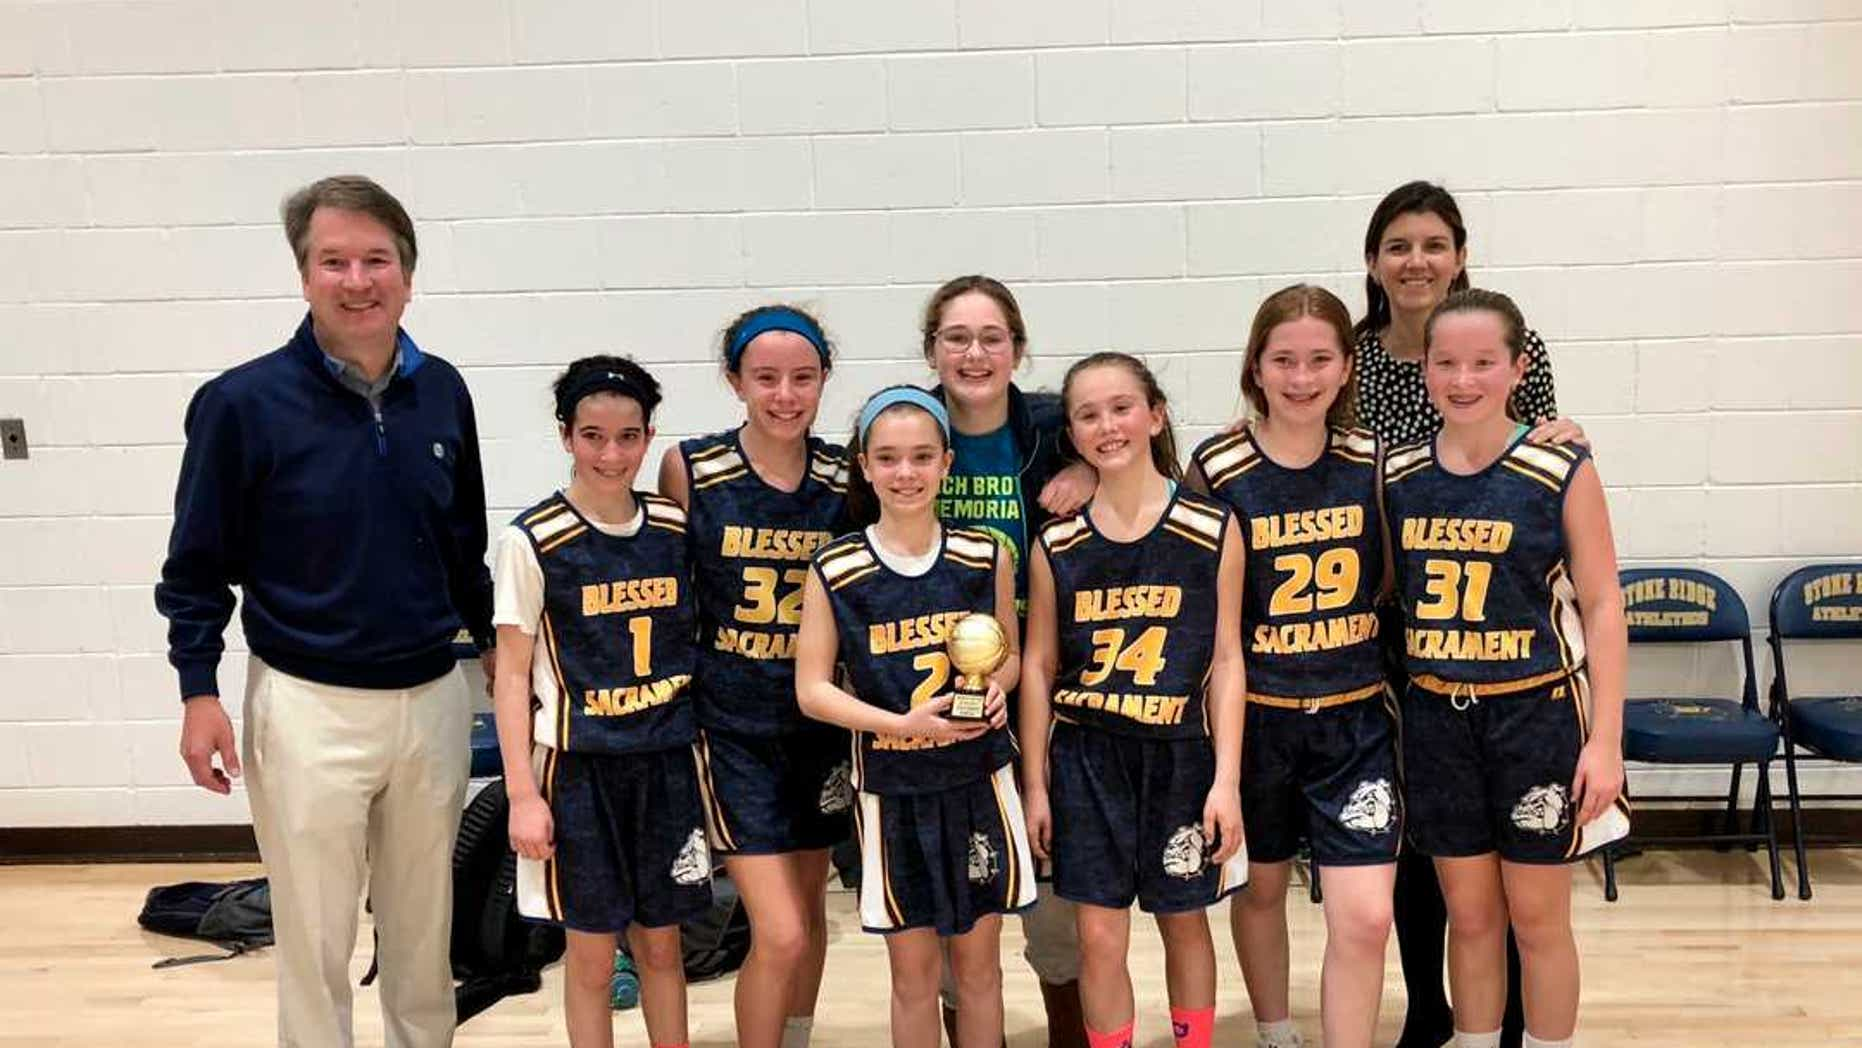 Judge Brett Kavanaugh with his daughter's basketball team, which he coaches.